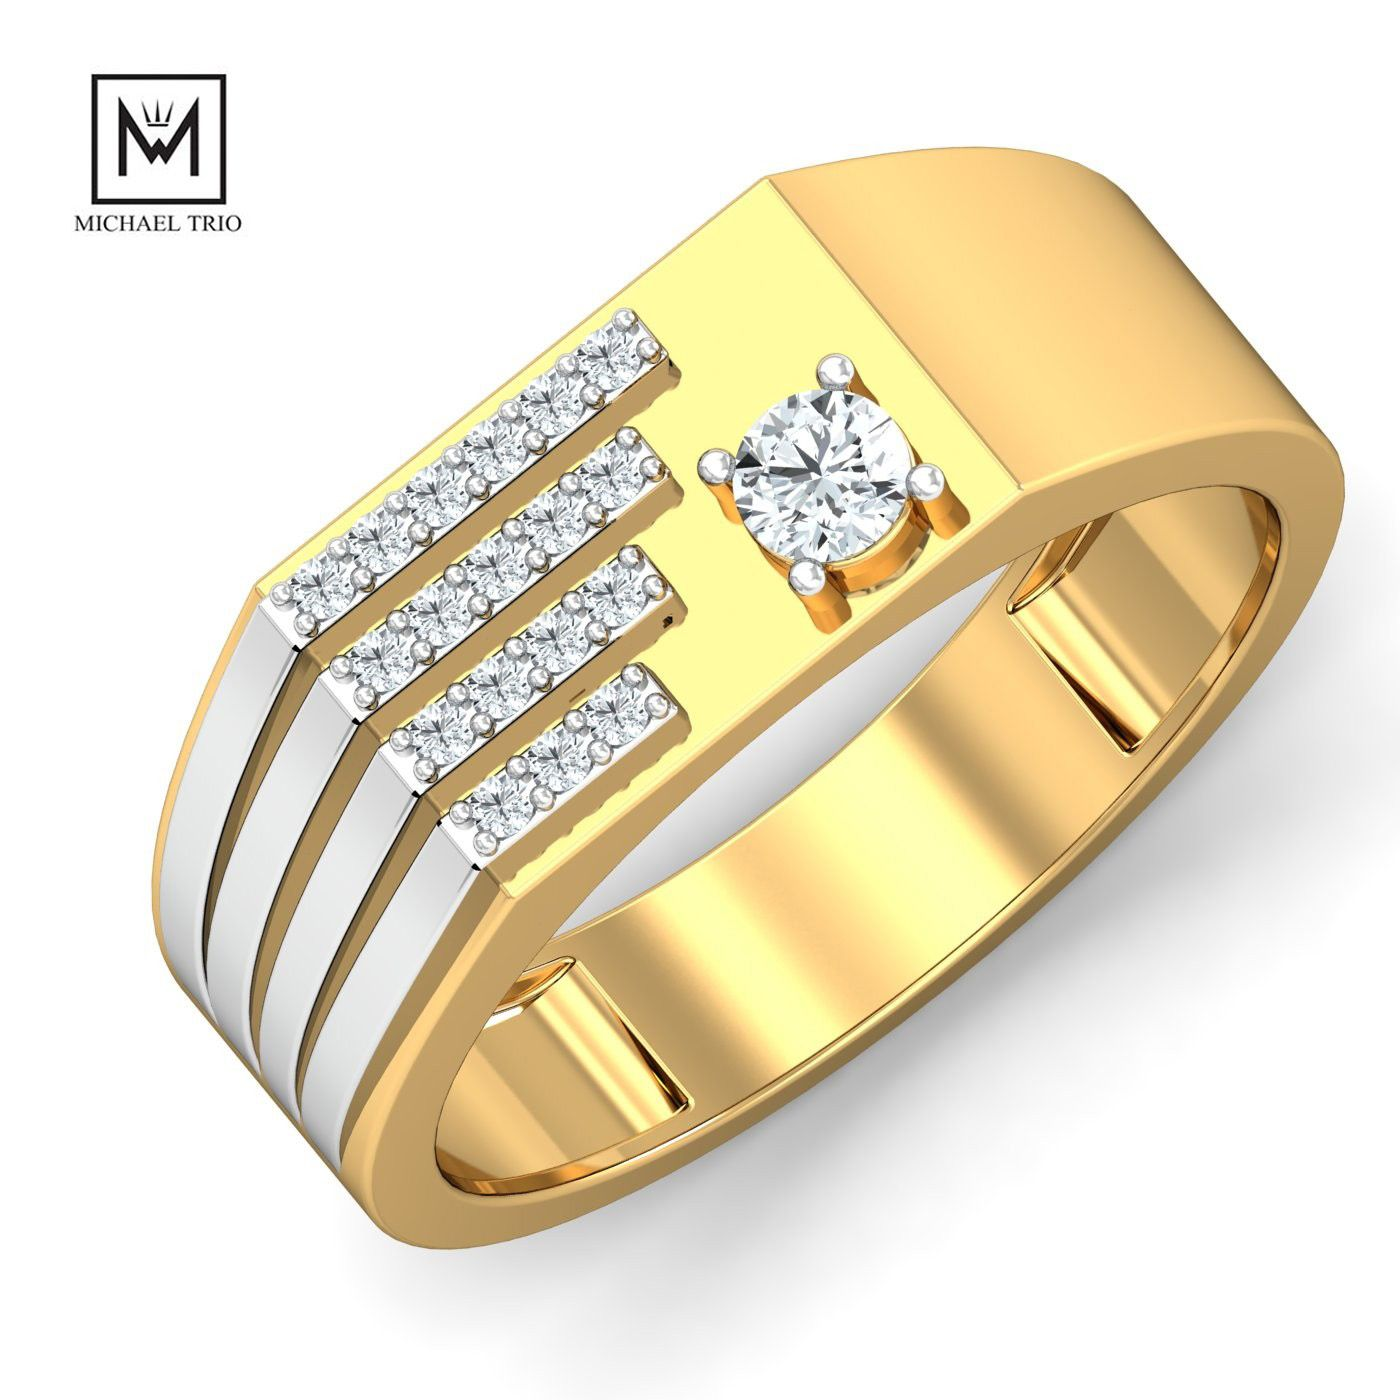 Shop Latest Designer Engagement And Wedding Rings For Mens Online From Michael Trio Which Offers Classic Mo Mens Gold Rings Mens Ring Designs Men Diamond Ring